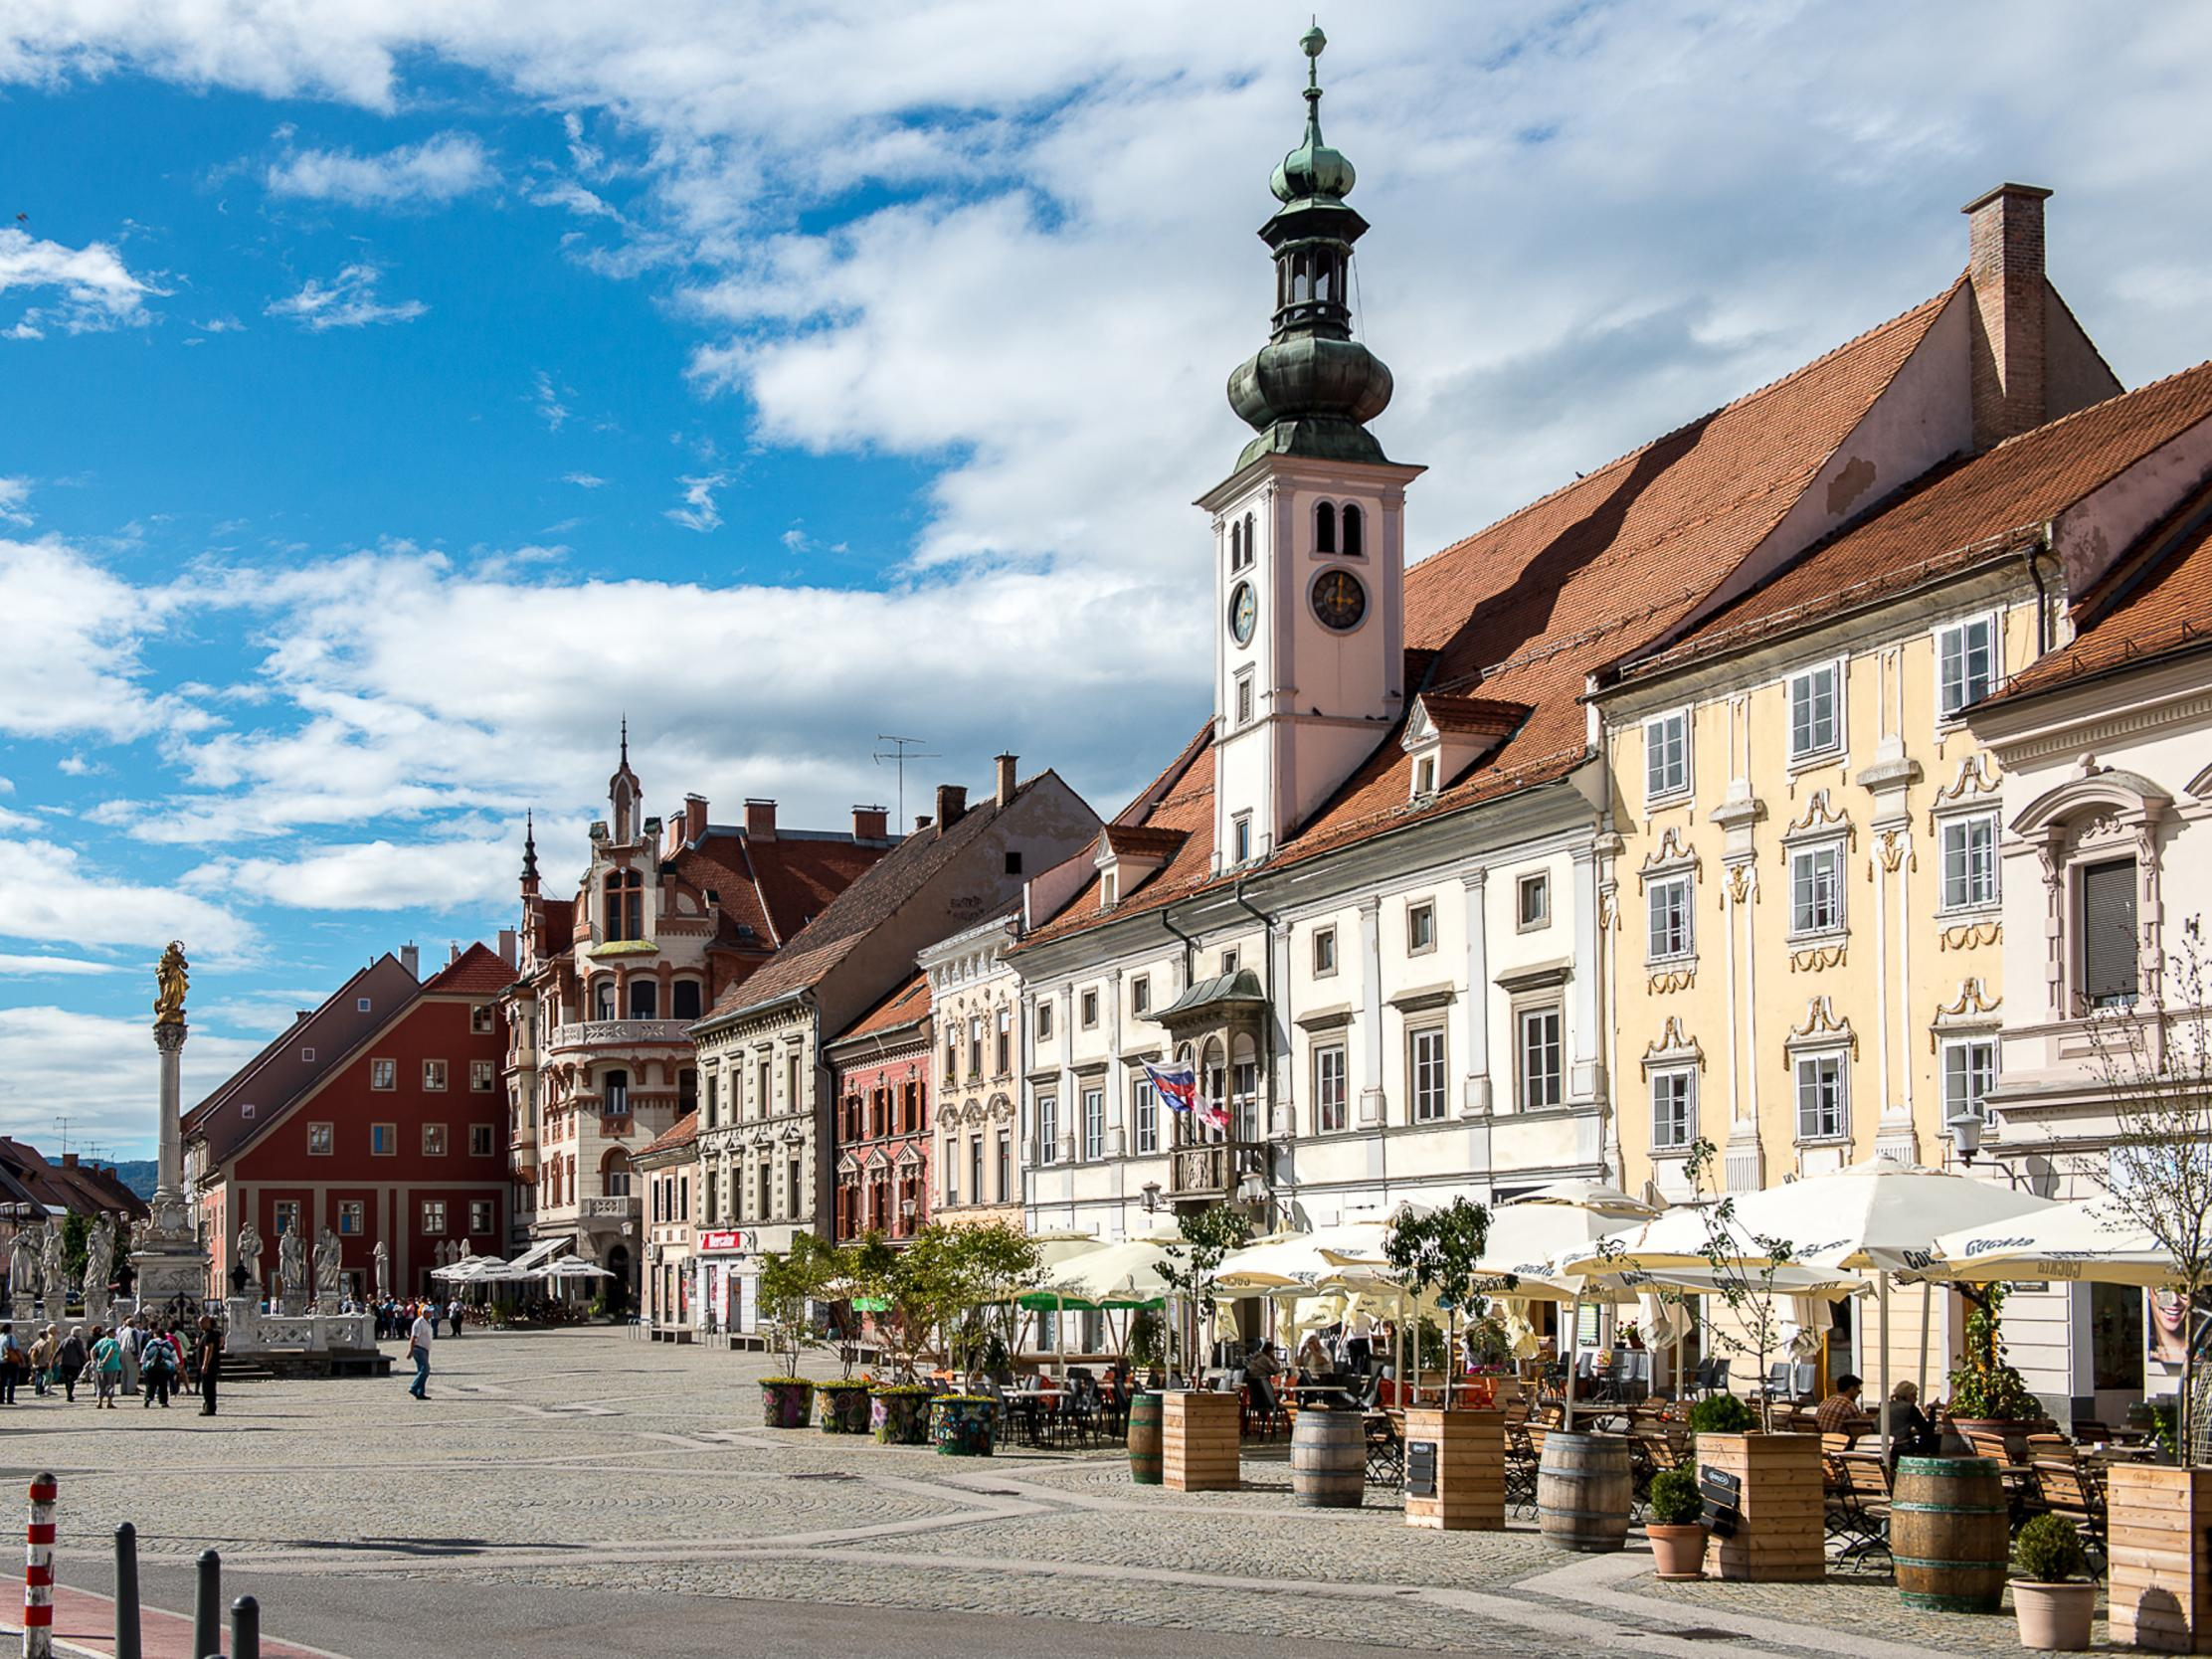 Maribor guide: Where to eat, drink, shop and stay in Slovenia's second city